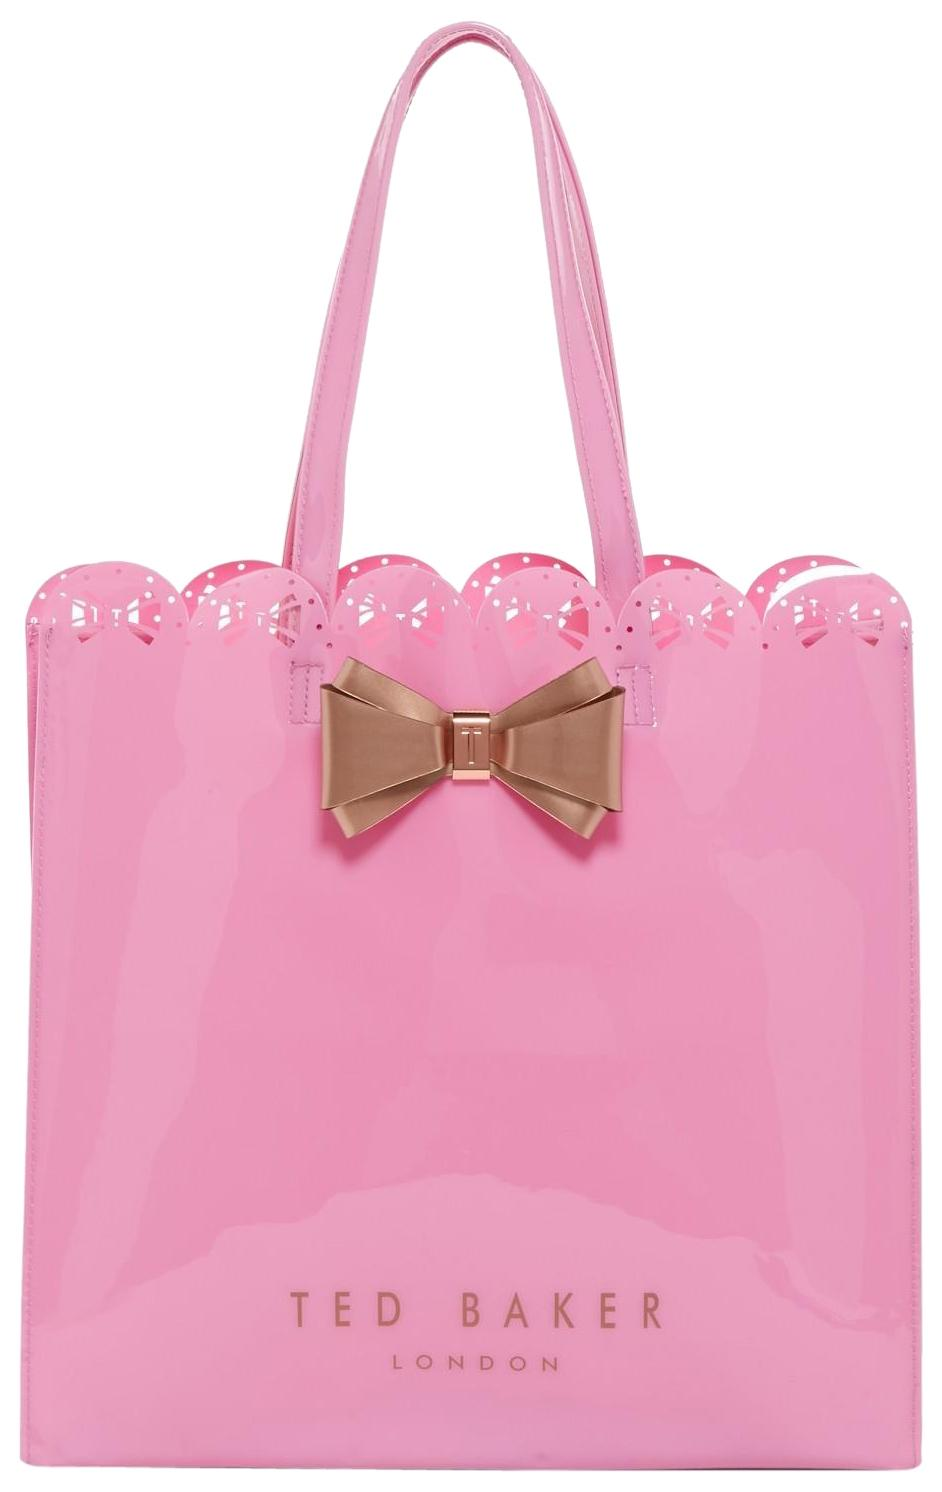 1b6a0caa1154 Ted Baker London Evecon Bow Large Icon Pale Pink Pvc Tote Tradesy